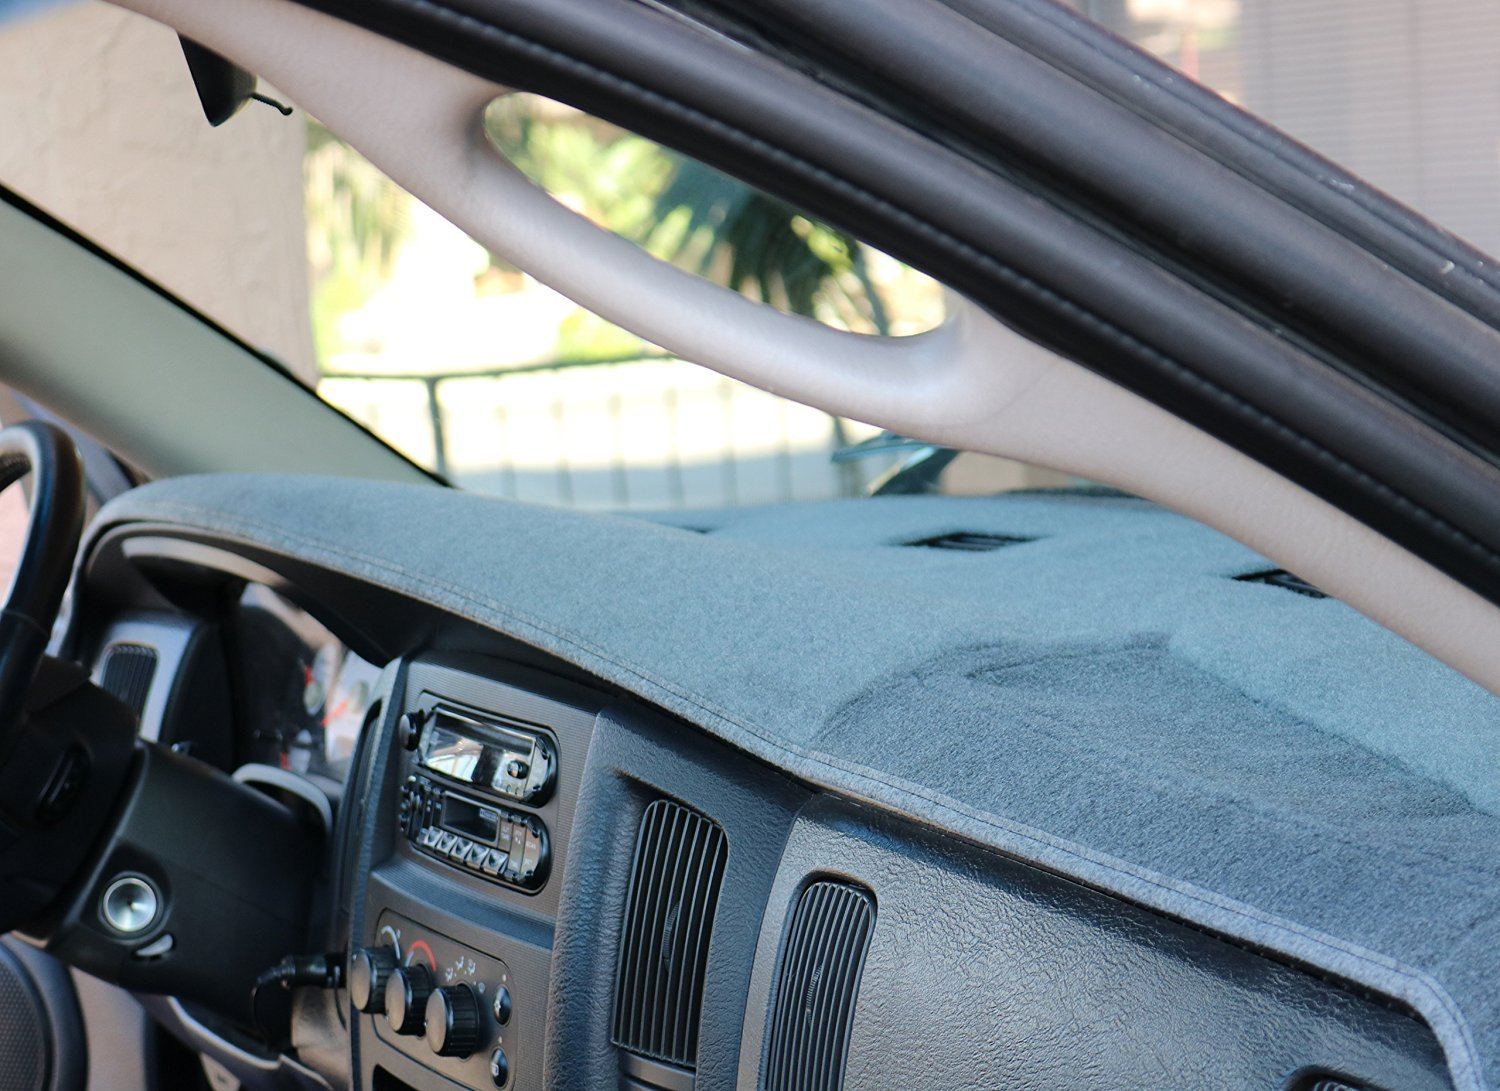 Angry Elephant Dodge Ram Cinder Carpet Dashboard Cover- 2009 1500, 2010 1500/2500/3500, 2011-2018 All Models with 1 Glove Box. Custom Fit Dash Cover, Easy Installation